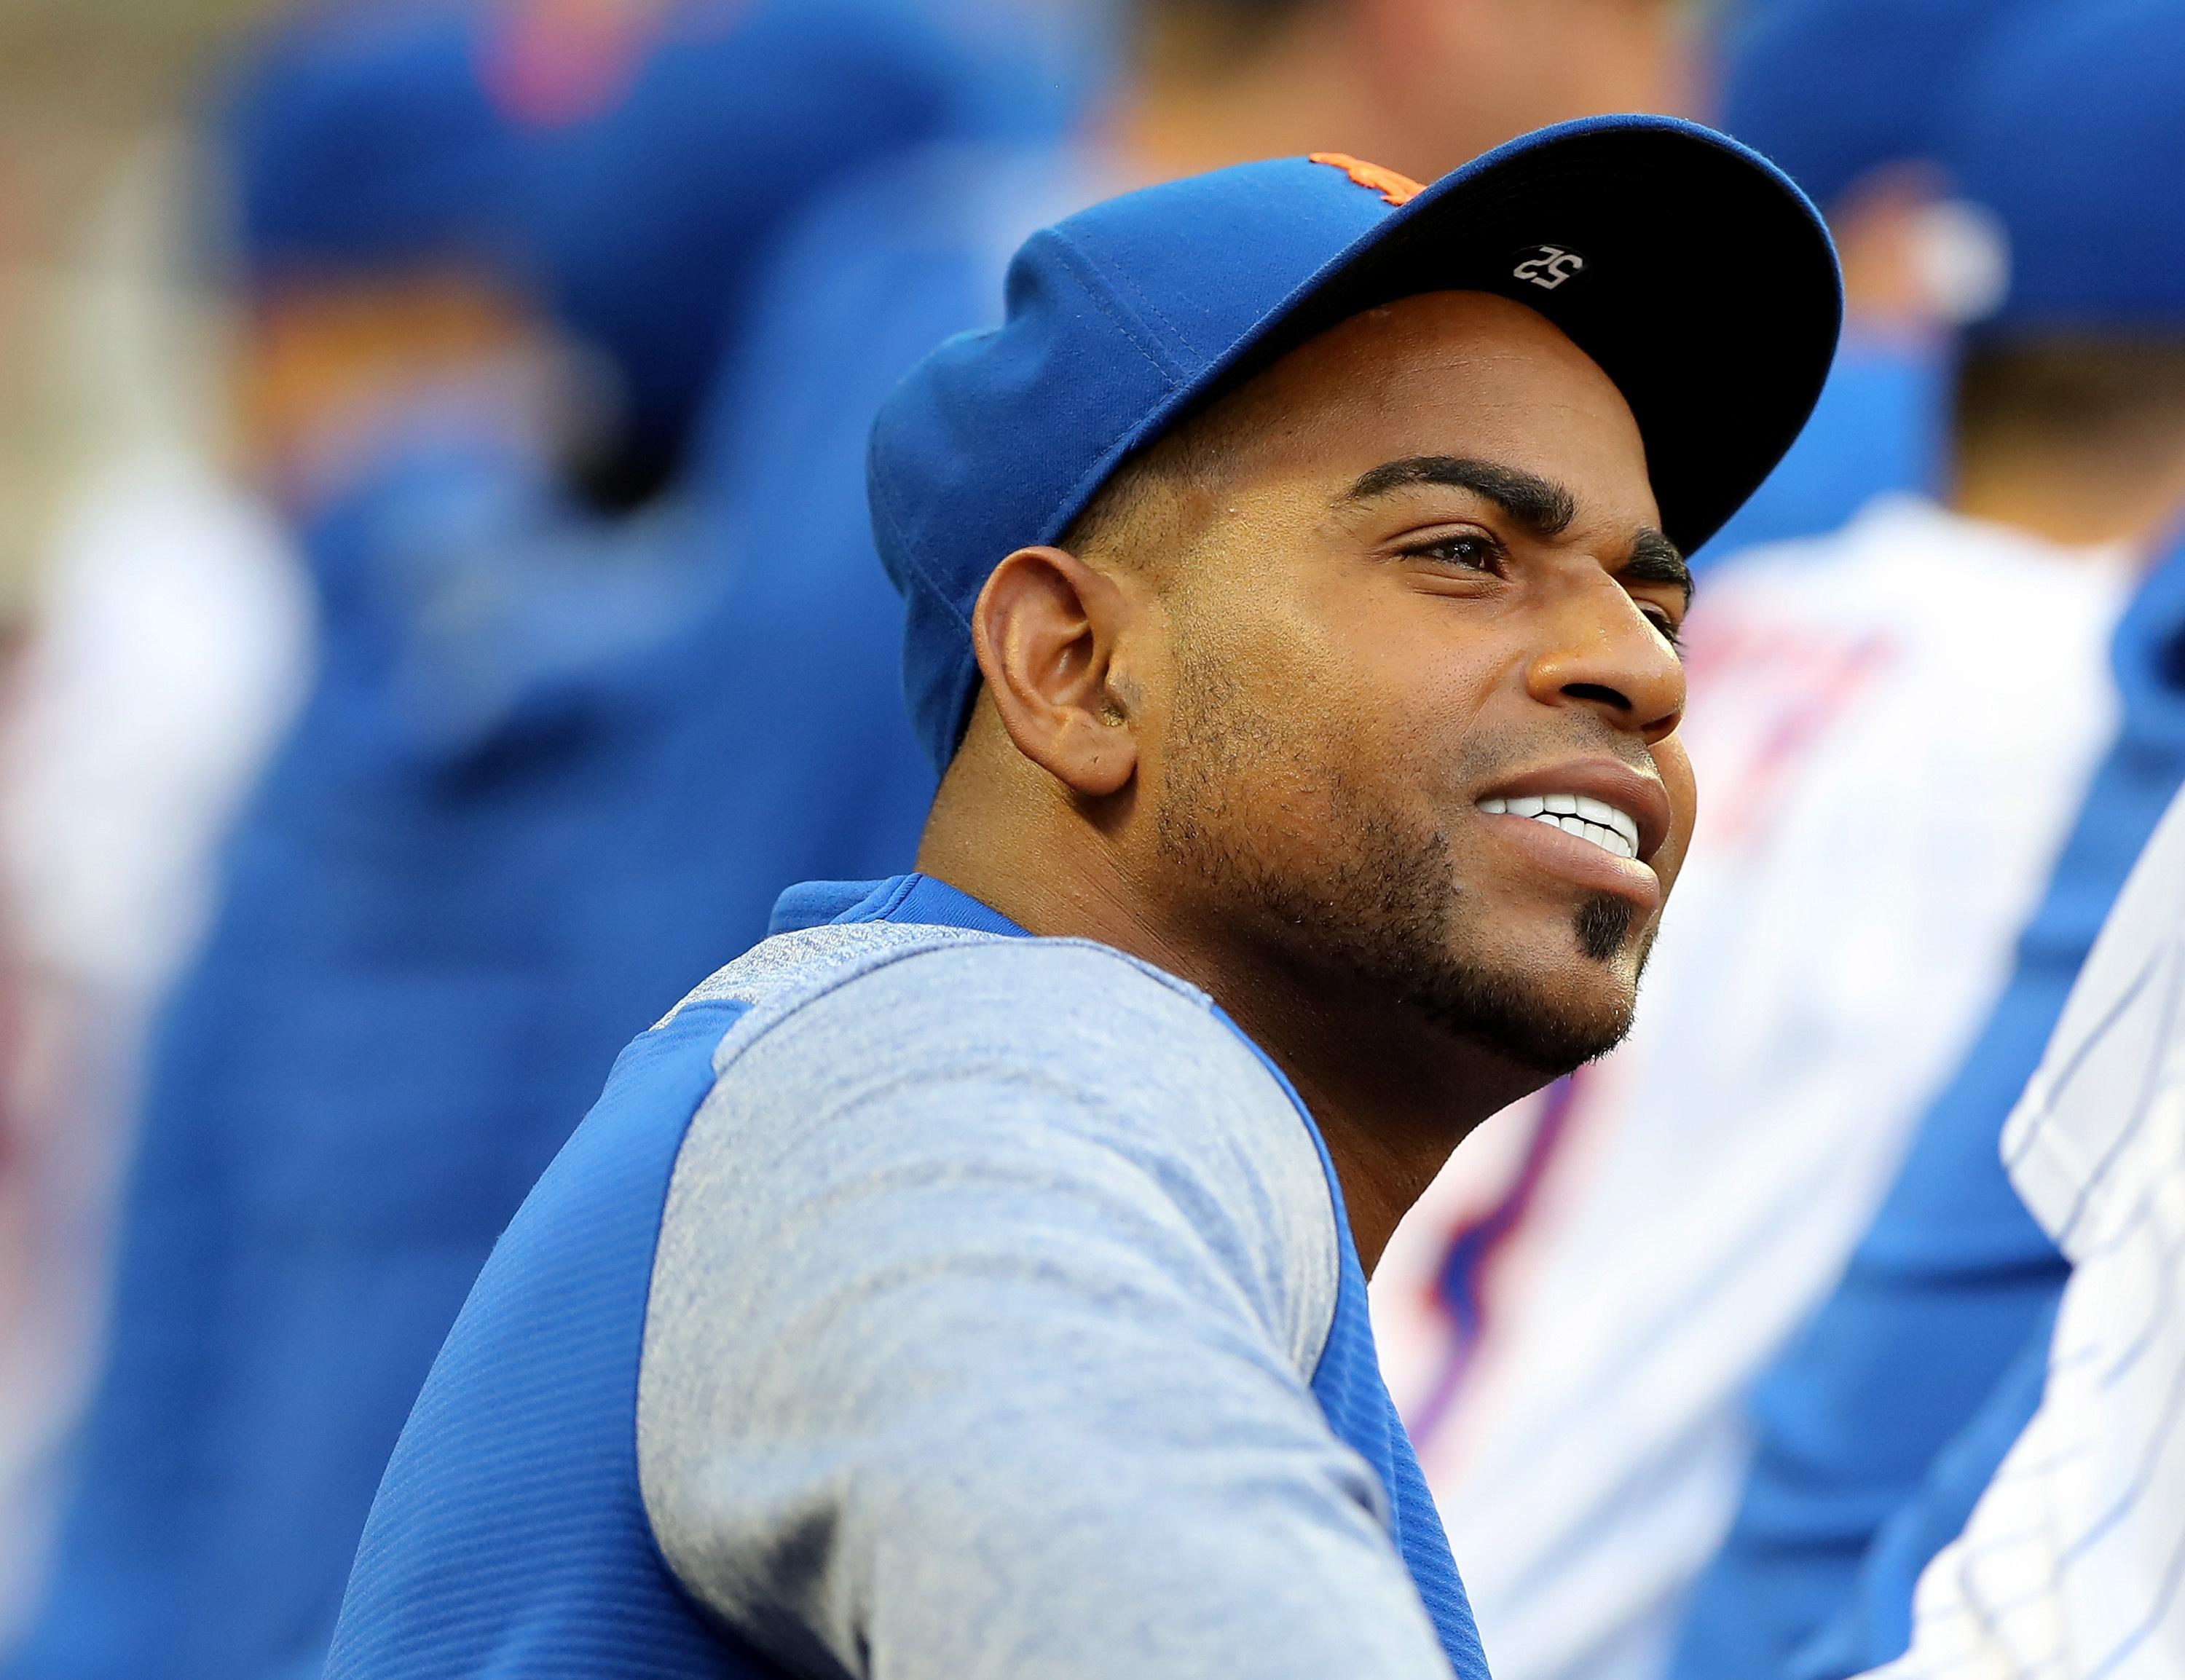 Yoenis Cespedes is certain he'll be ready for opening day